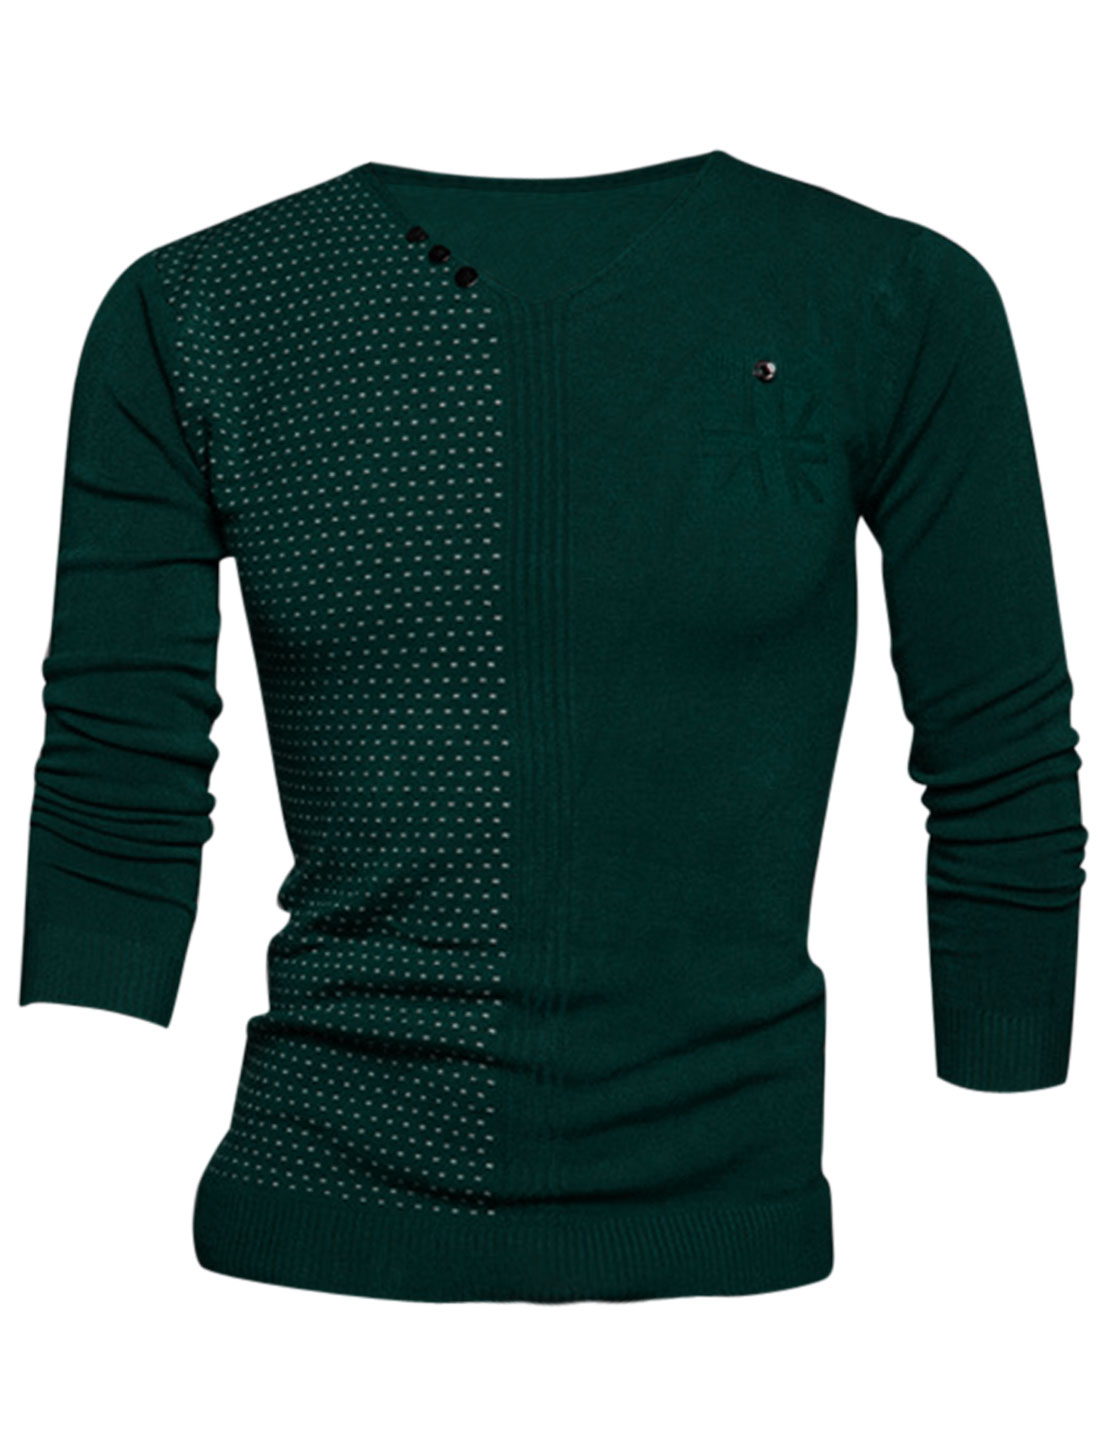 Men V Neck Novelty Prints Stitched Design Soft Knit Shirt Army Green M